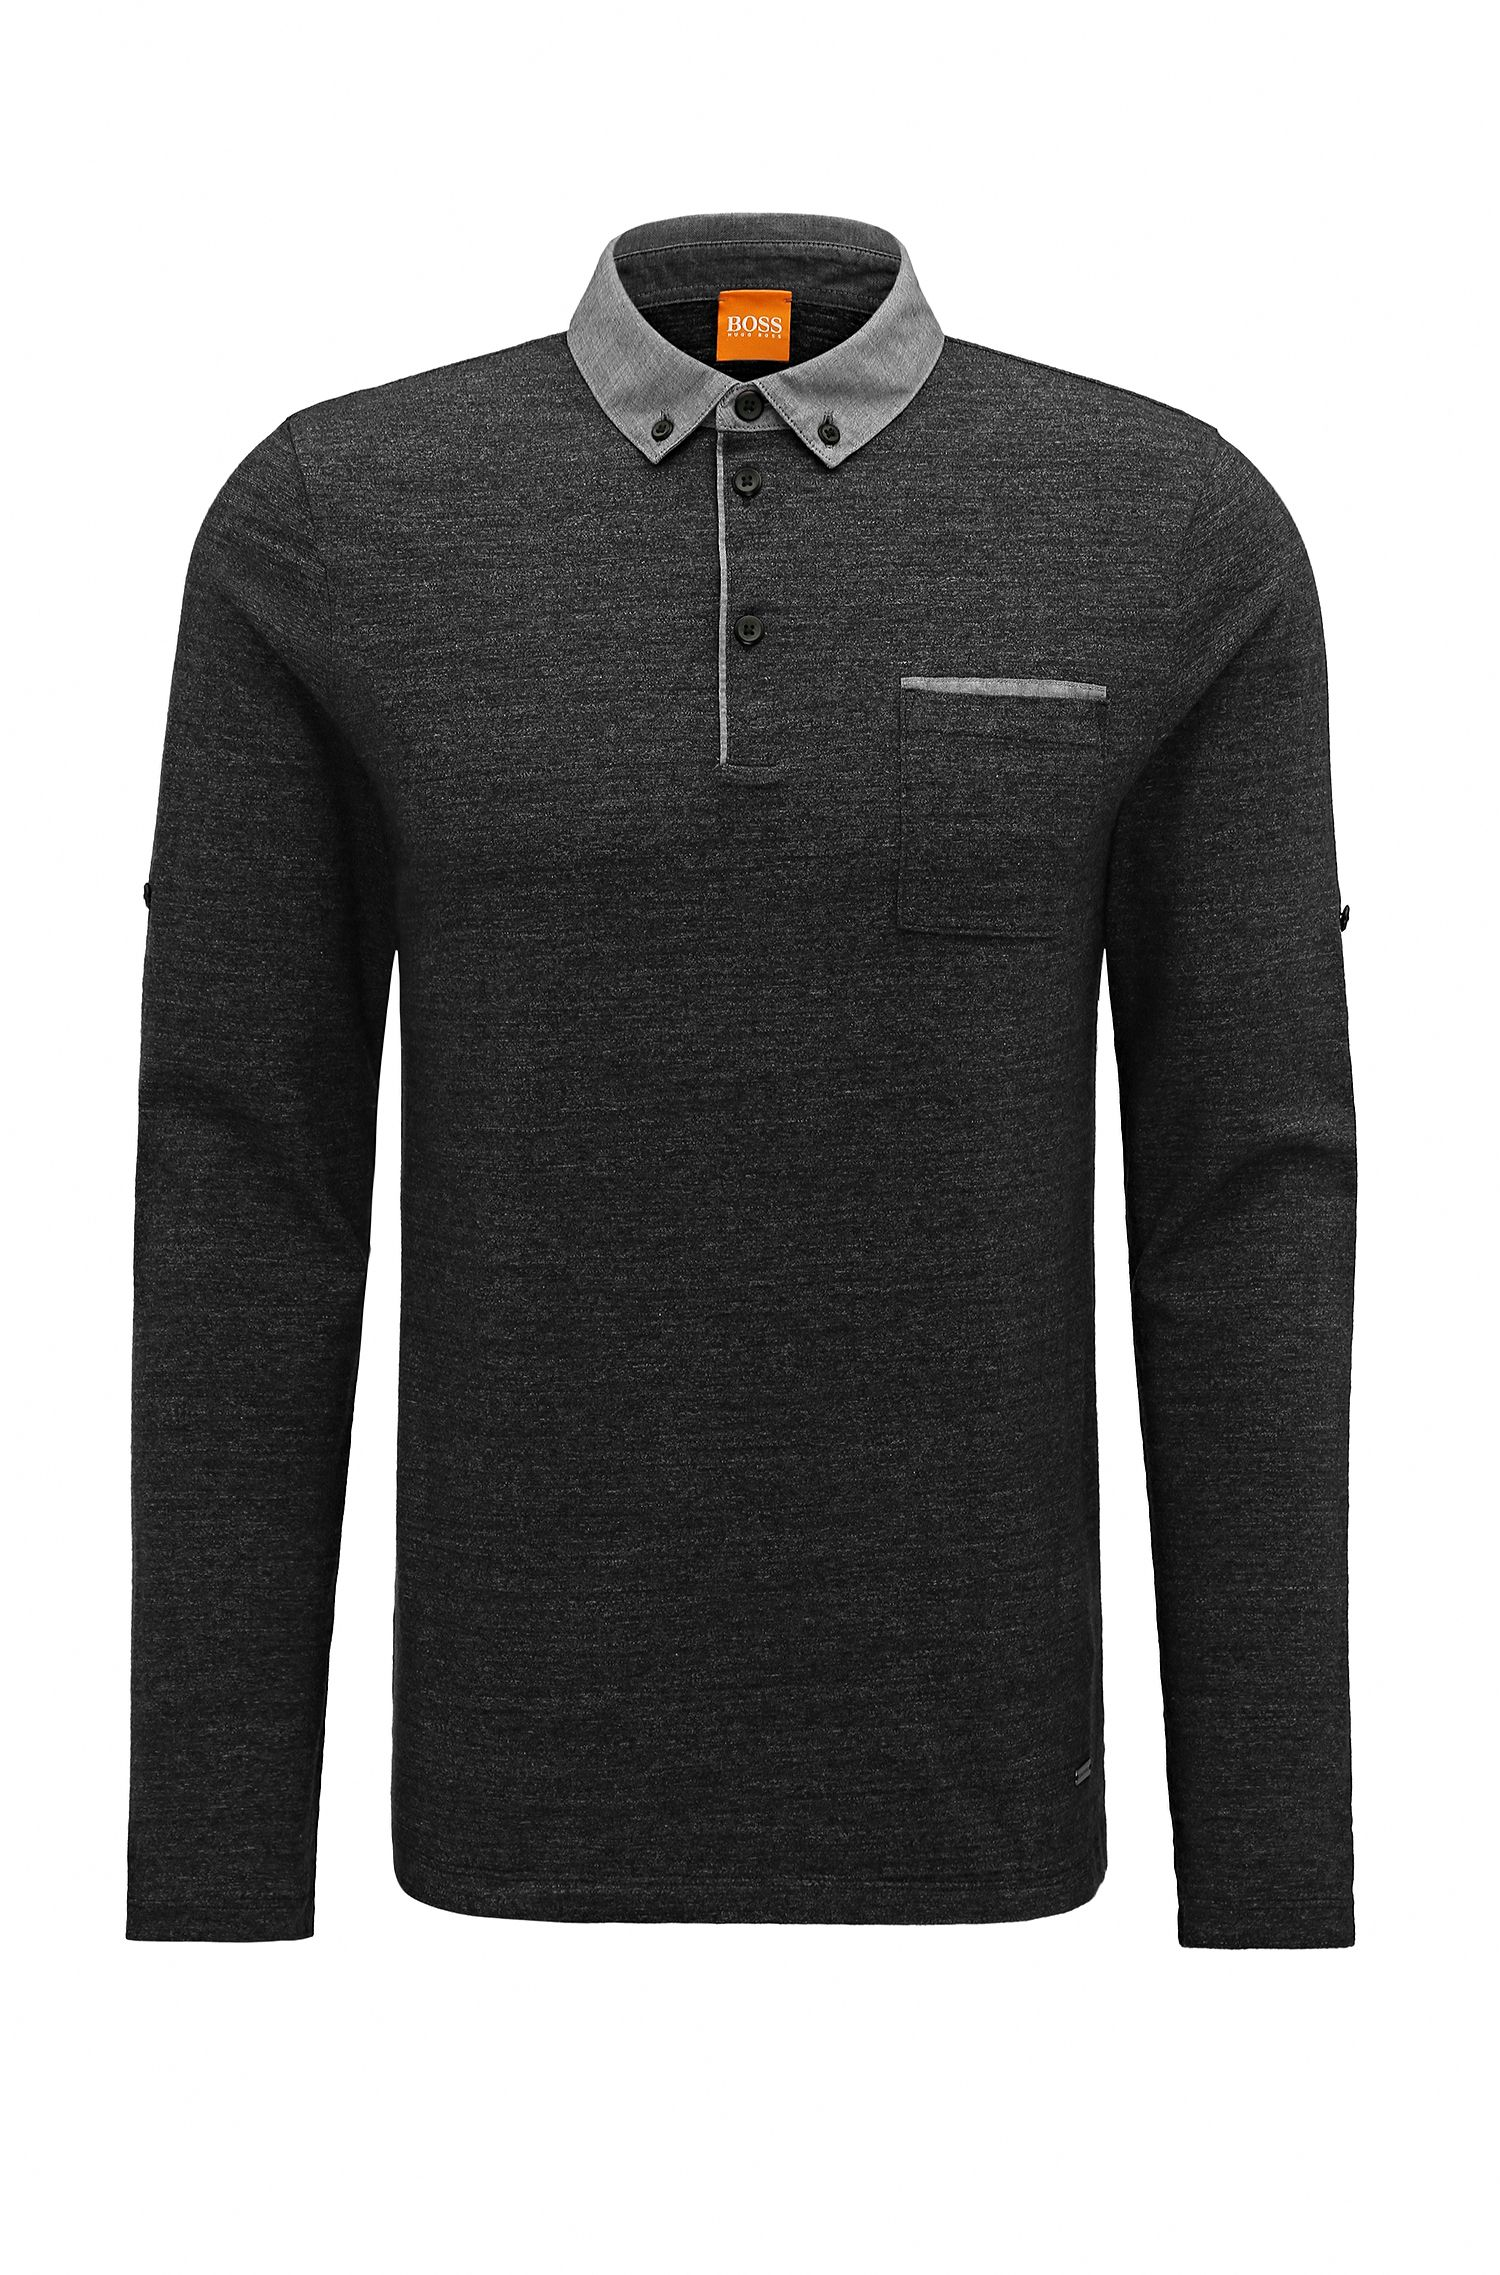 Regular-fit cotton polo with adjustable sleeves